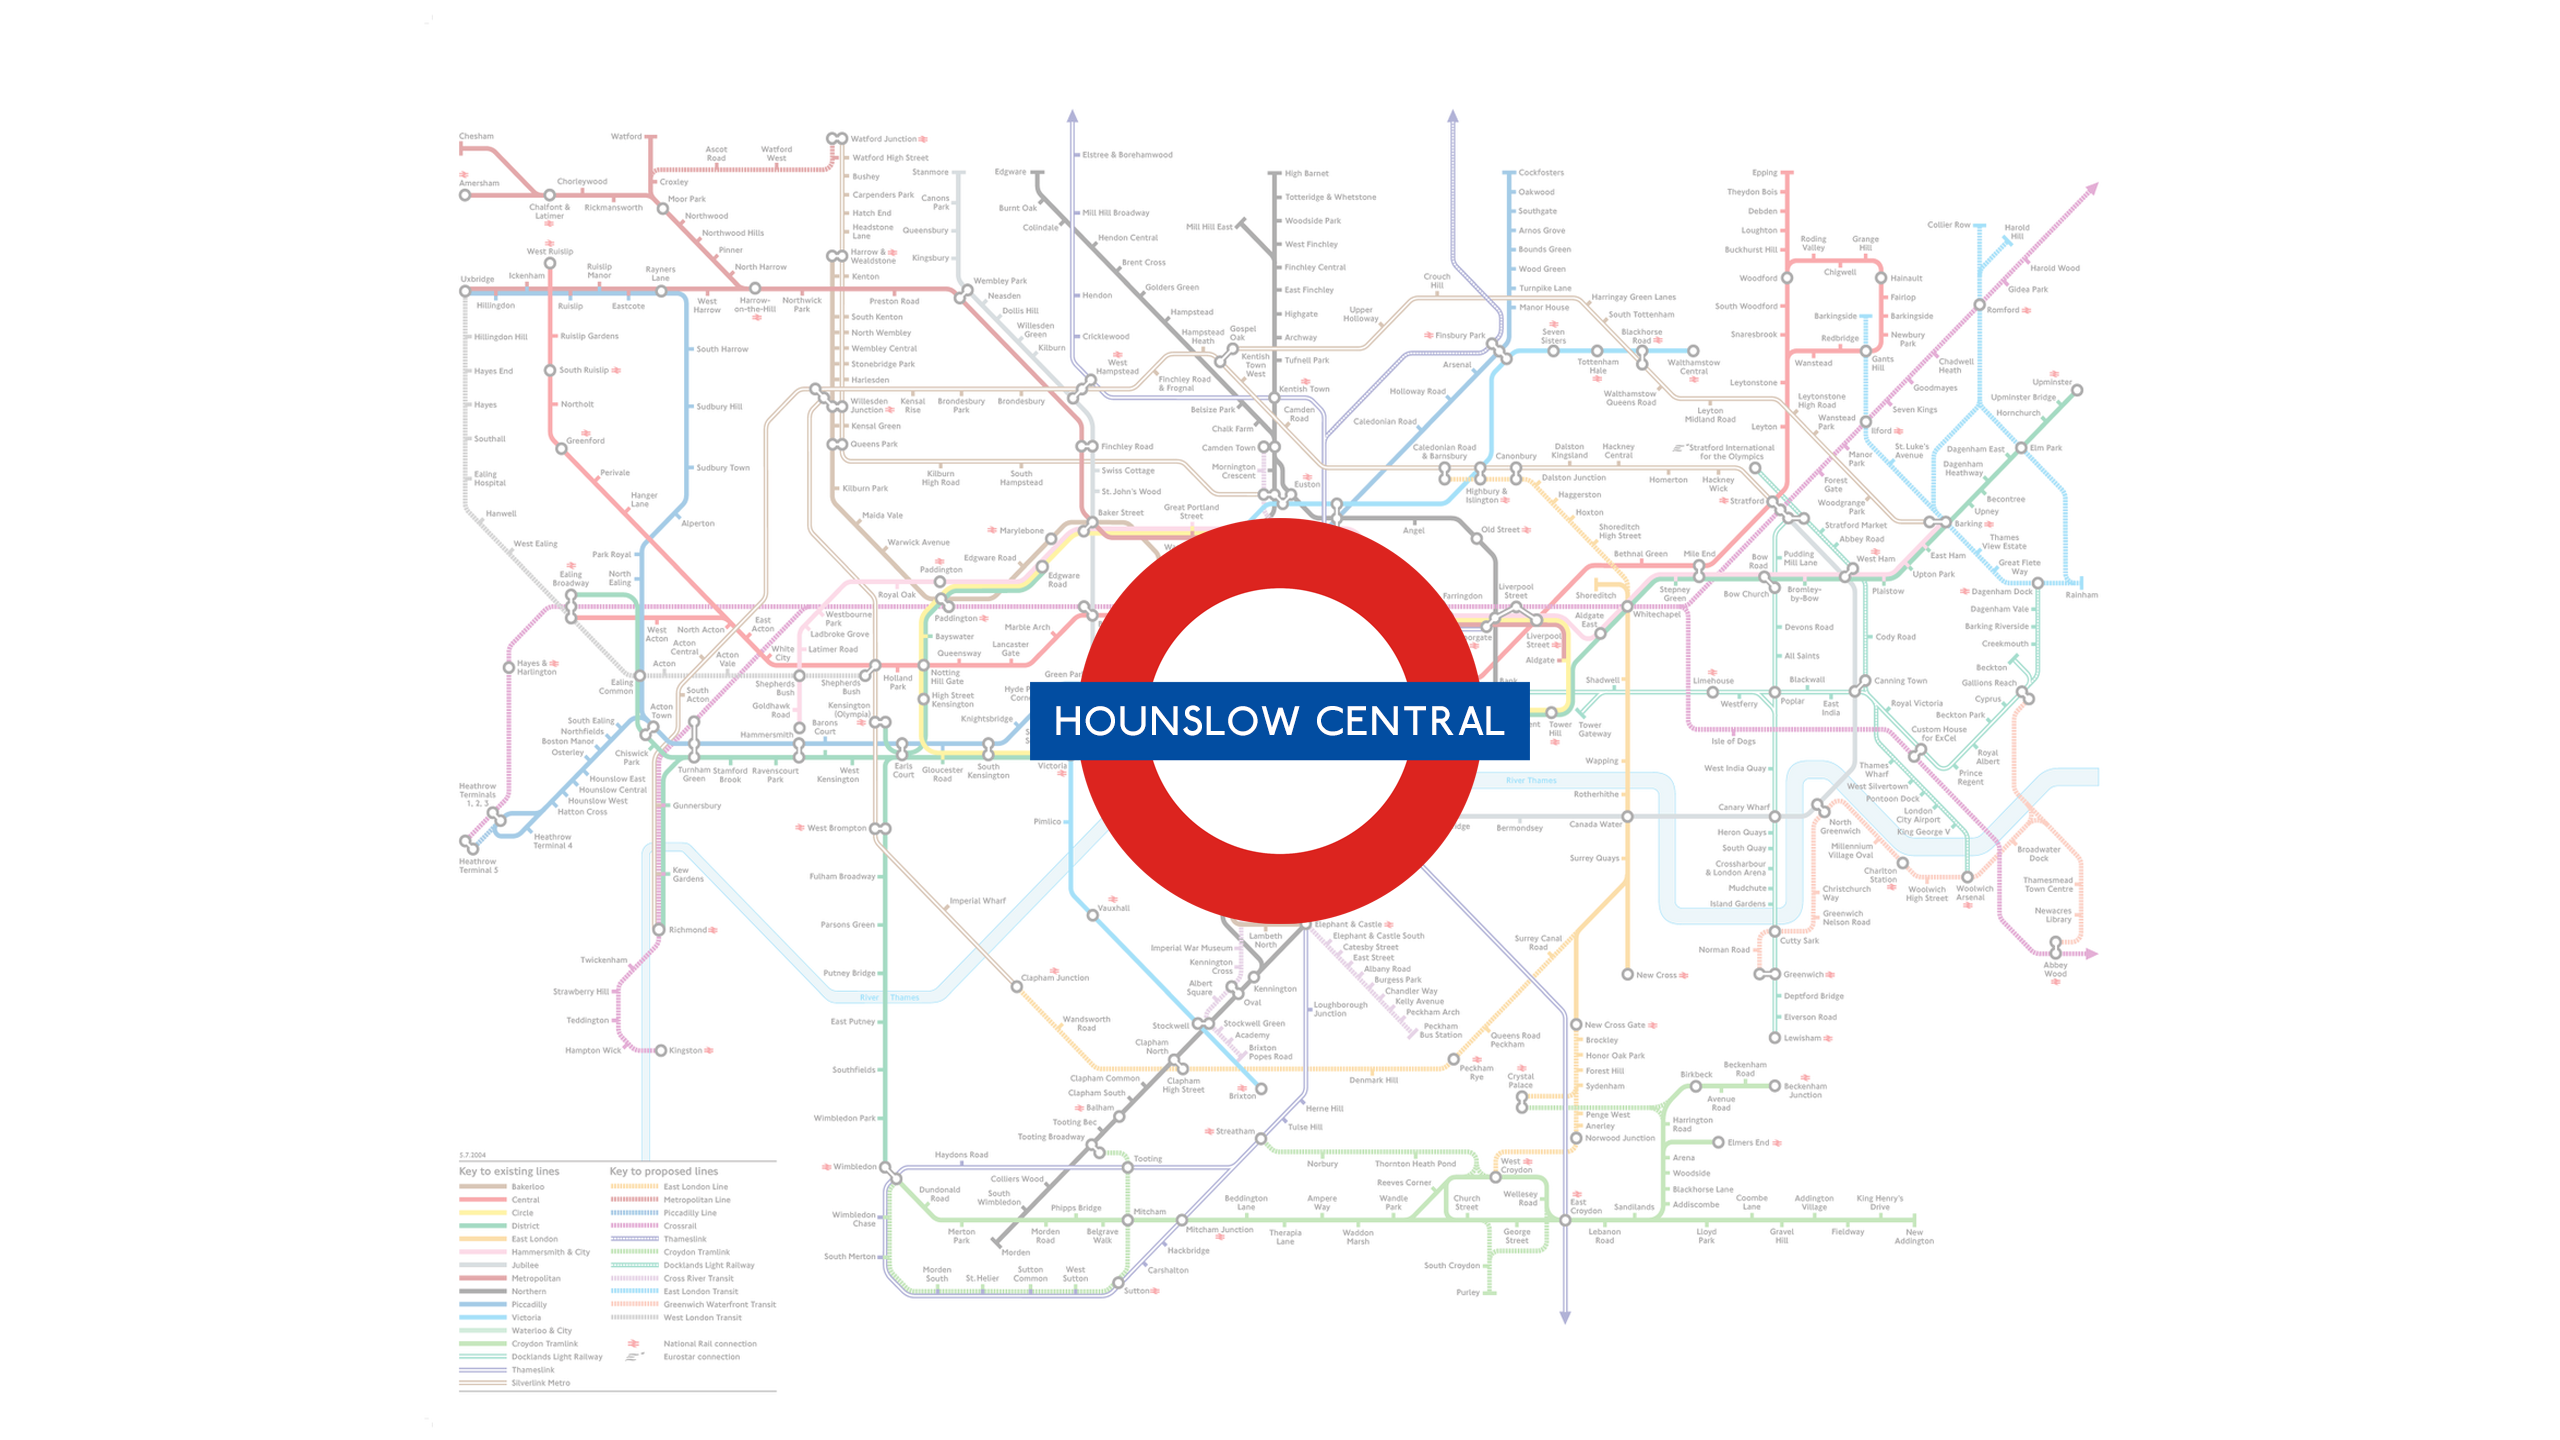 Hounslow Central (Map)